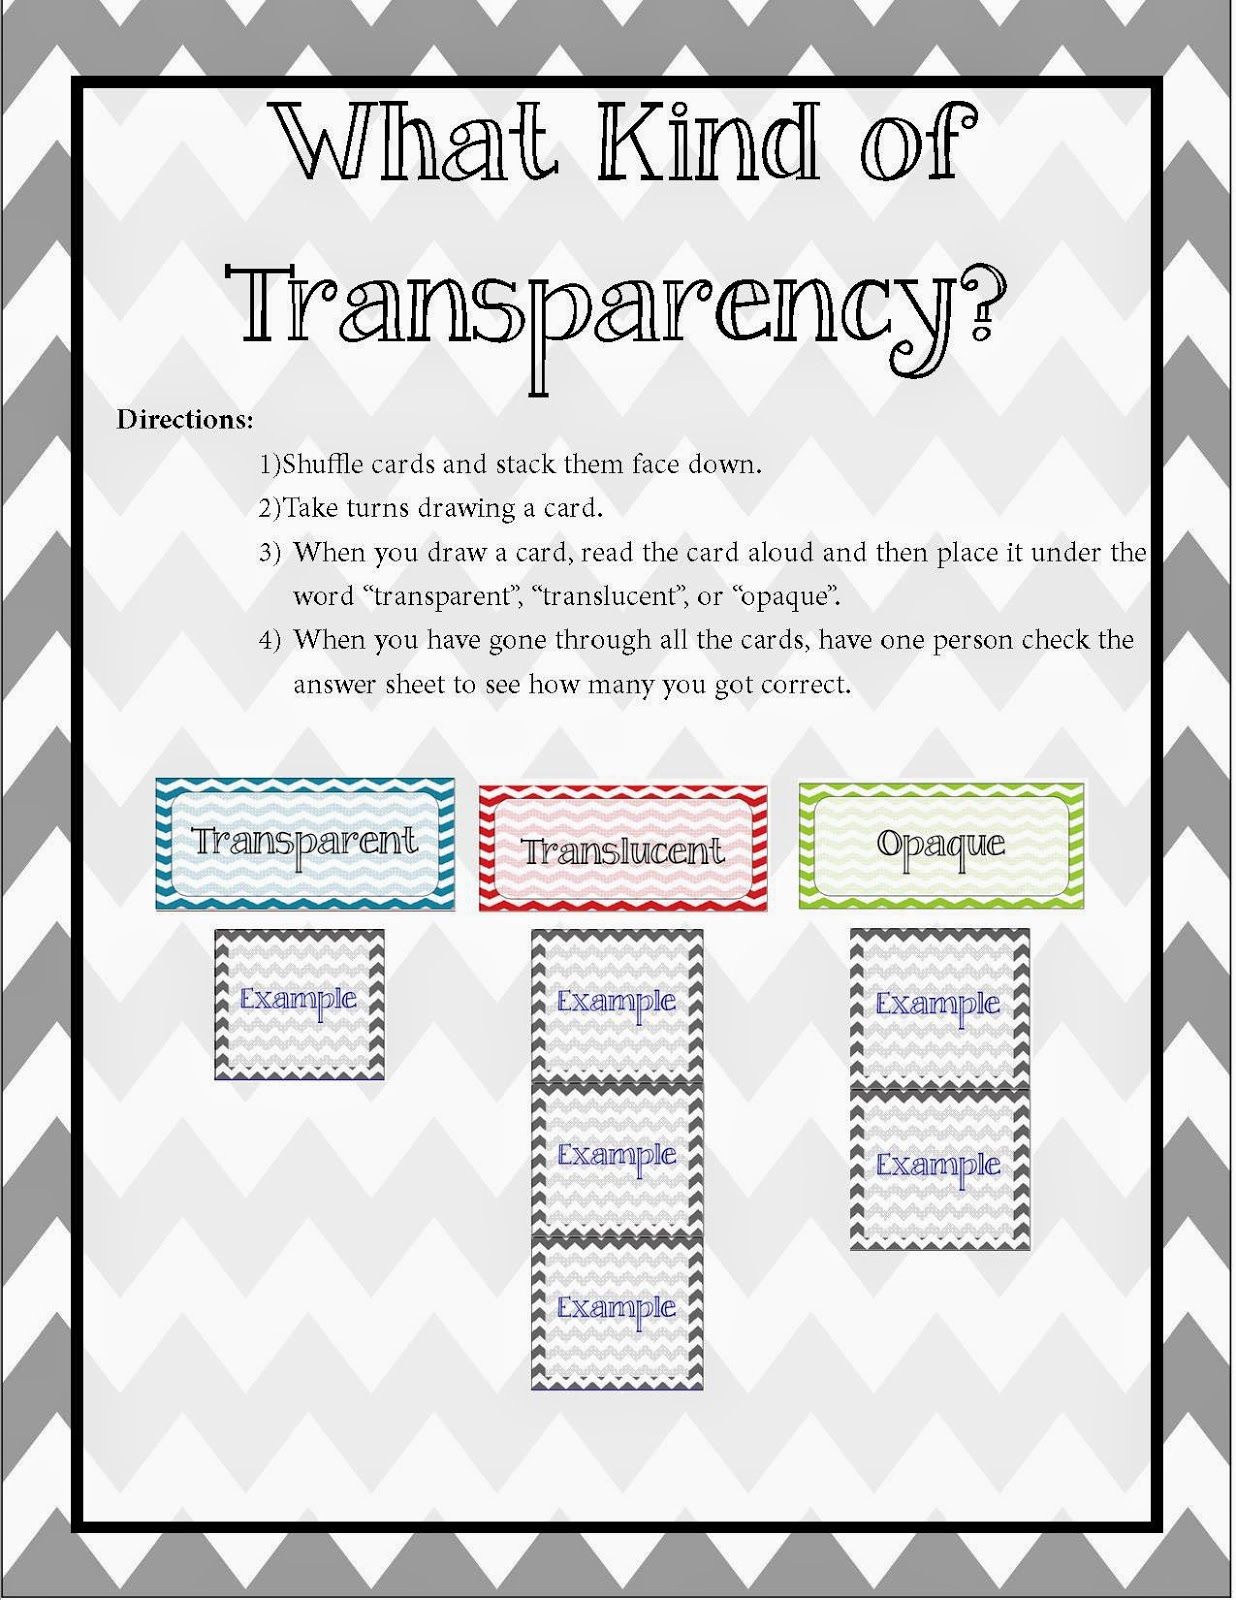 worksheet Transparent Translucent Opaque Worksheet sunrise and shine all about light transparenttranslucentopaque game 2 worksheets